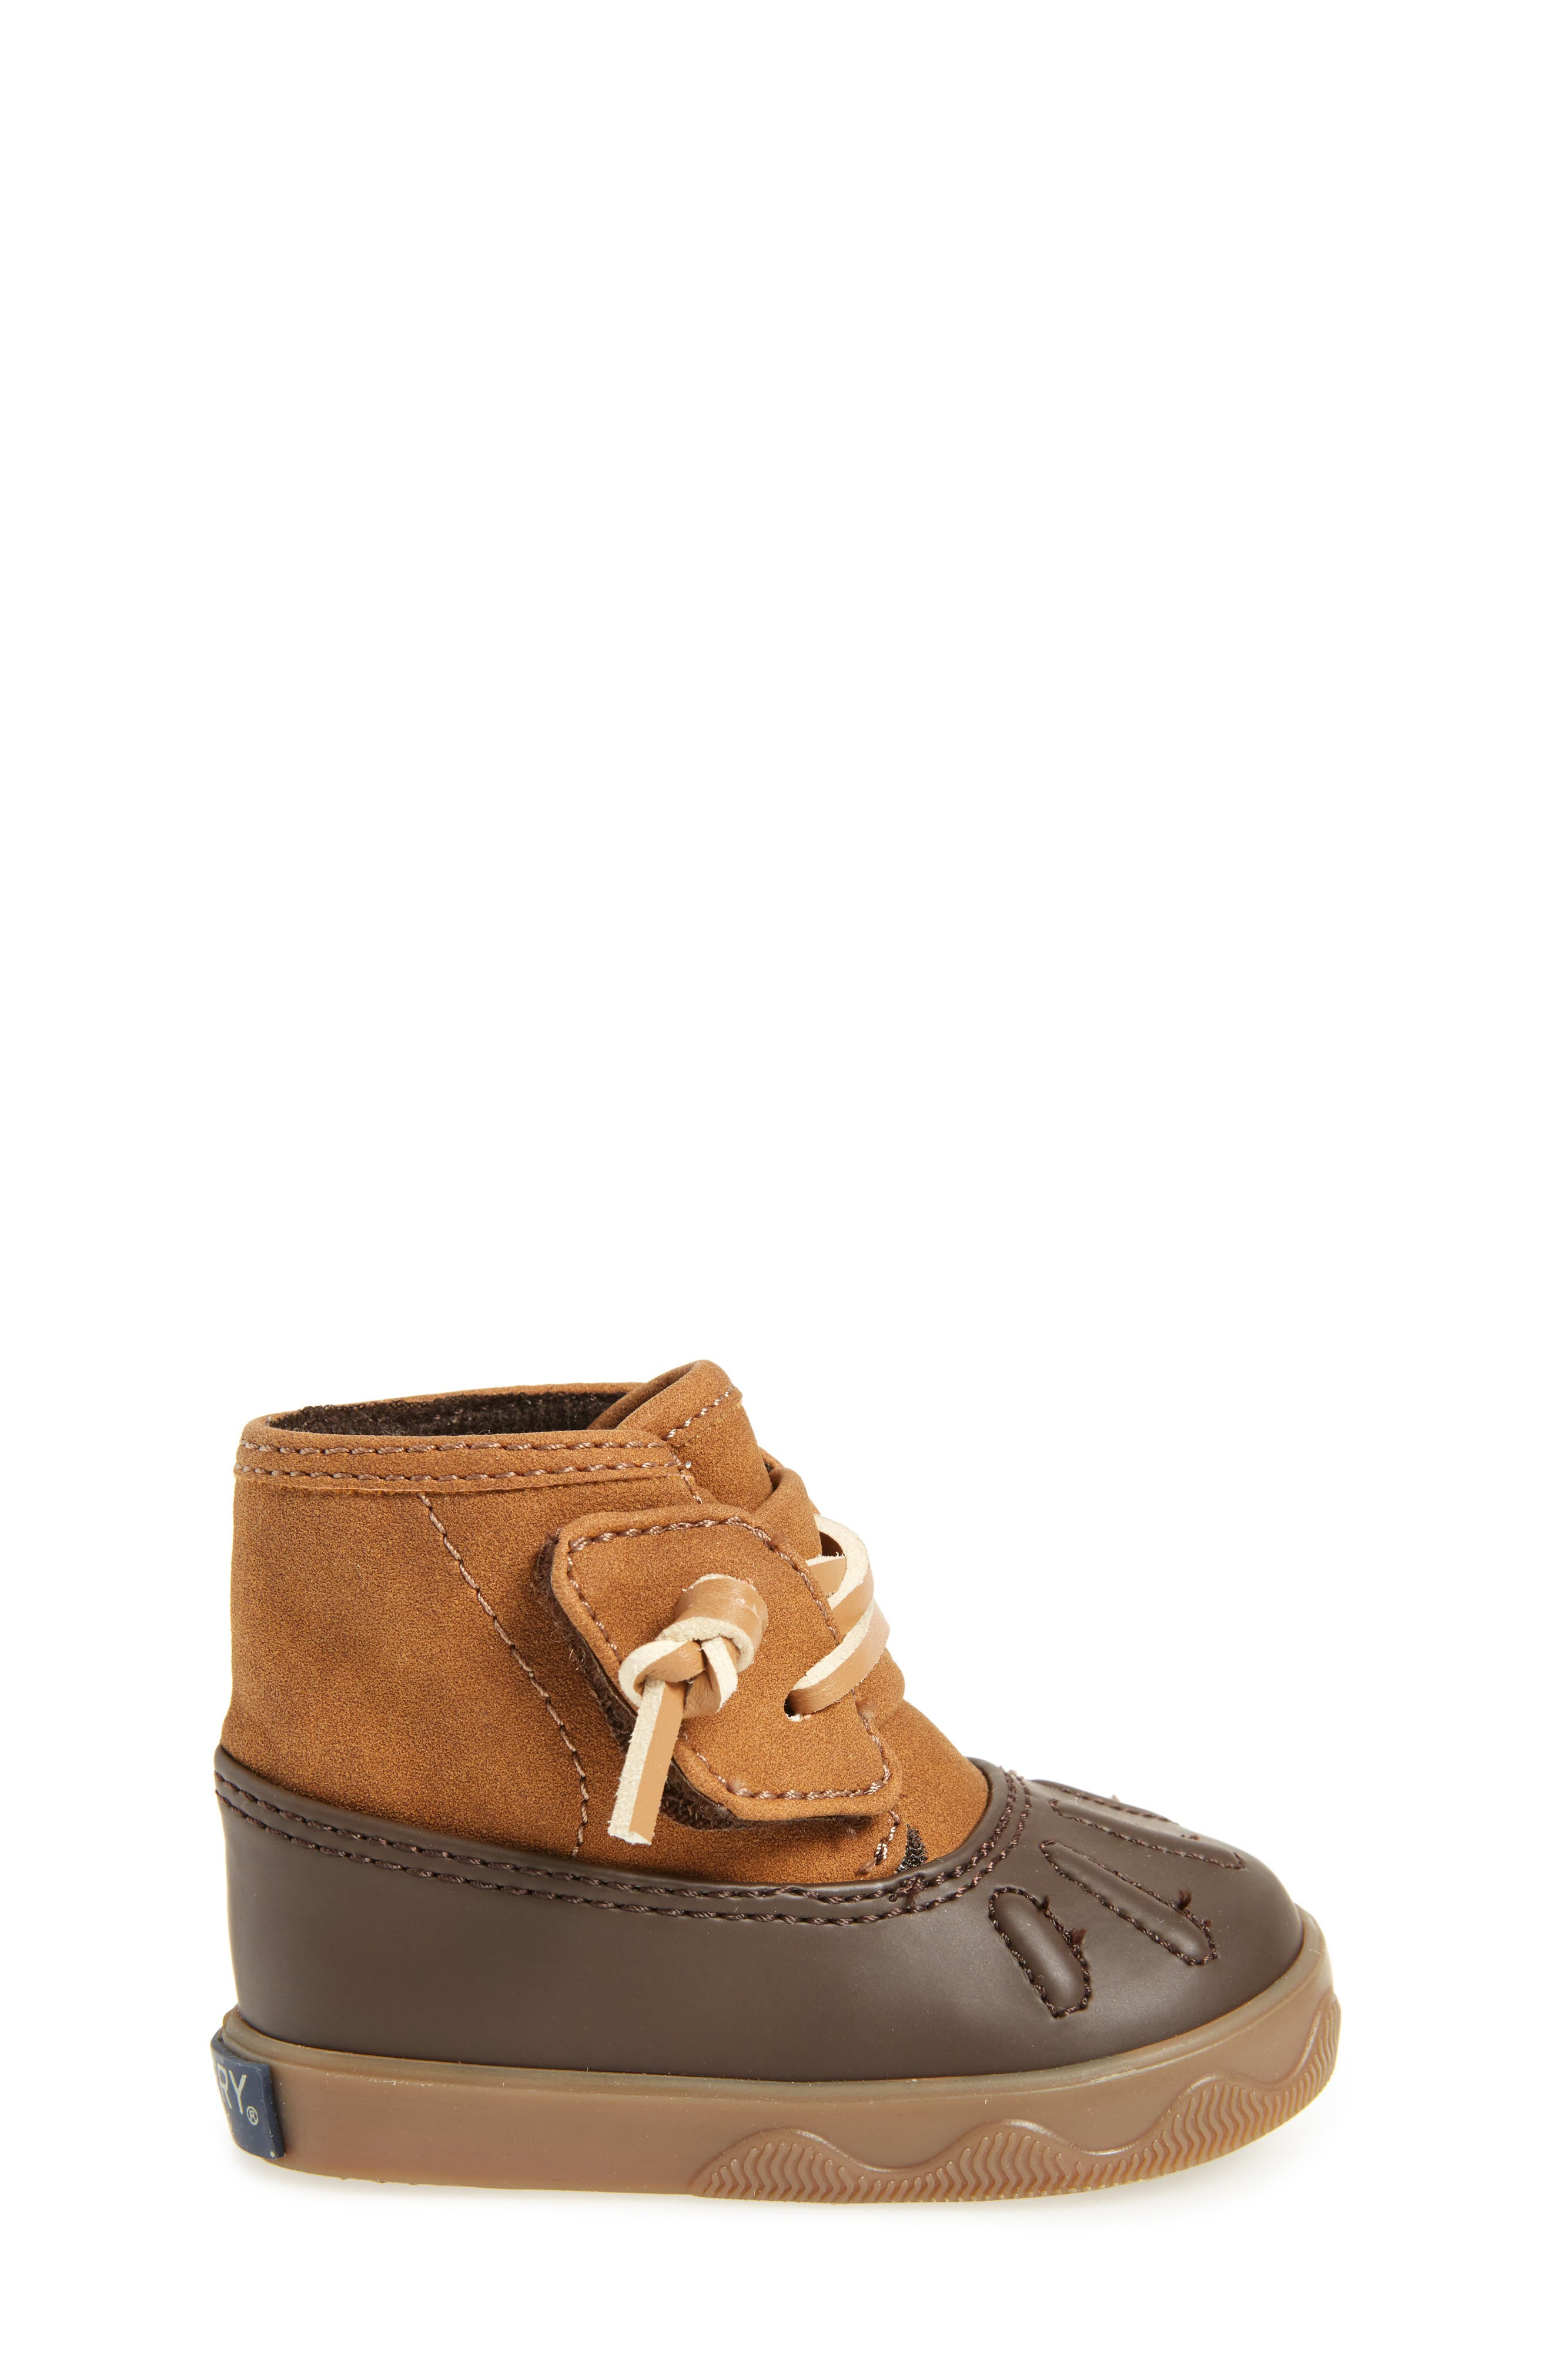 Sperry Icestorm Crib Duck Bootie,                             Alternate thumbnail 3, color,                             TAN/ BROWN